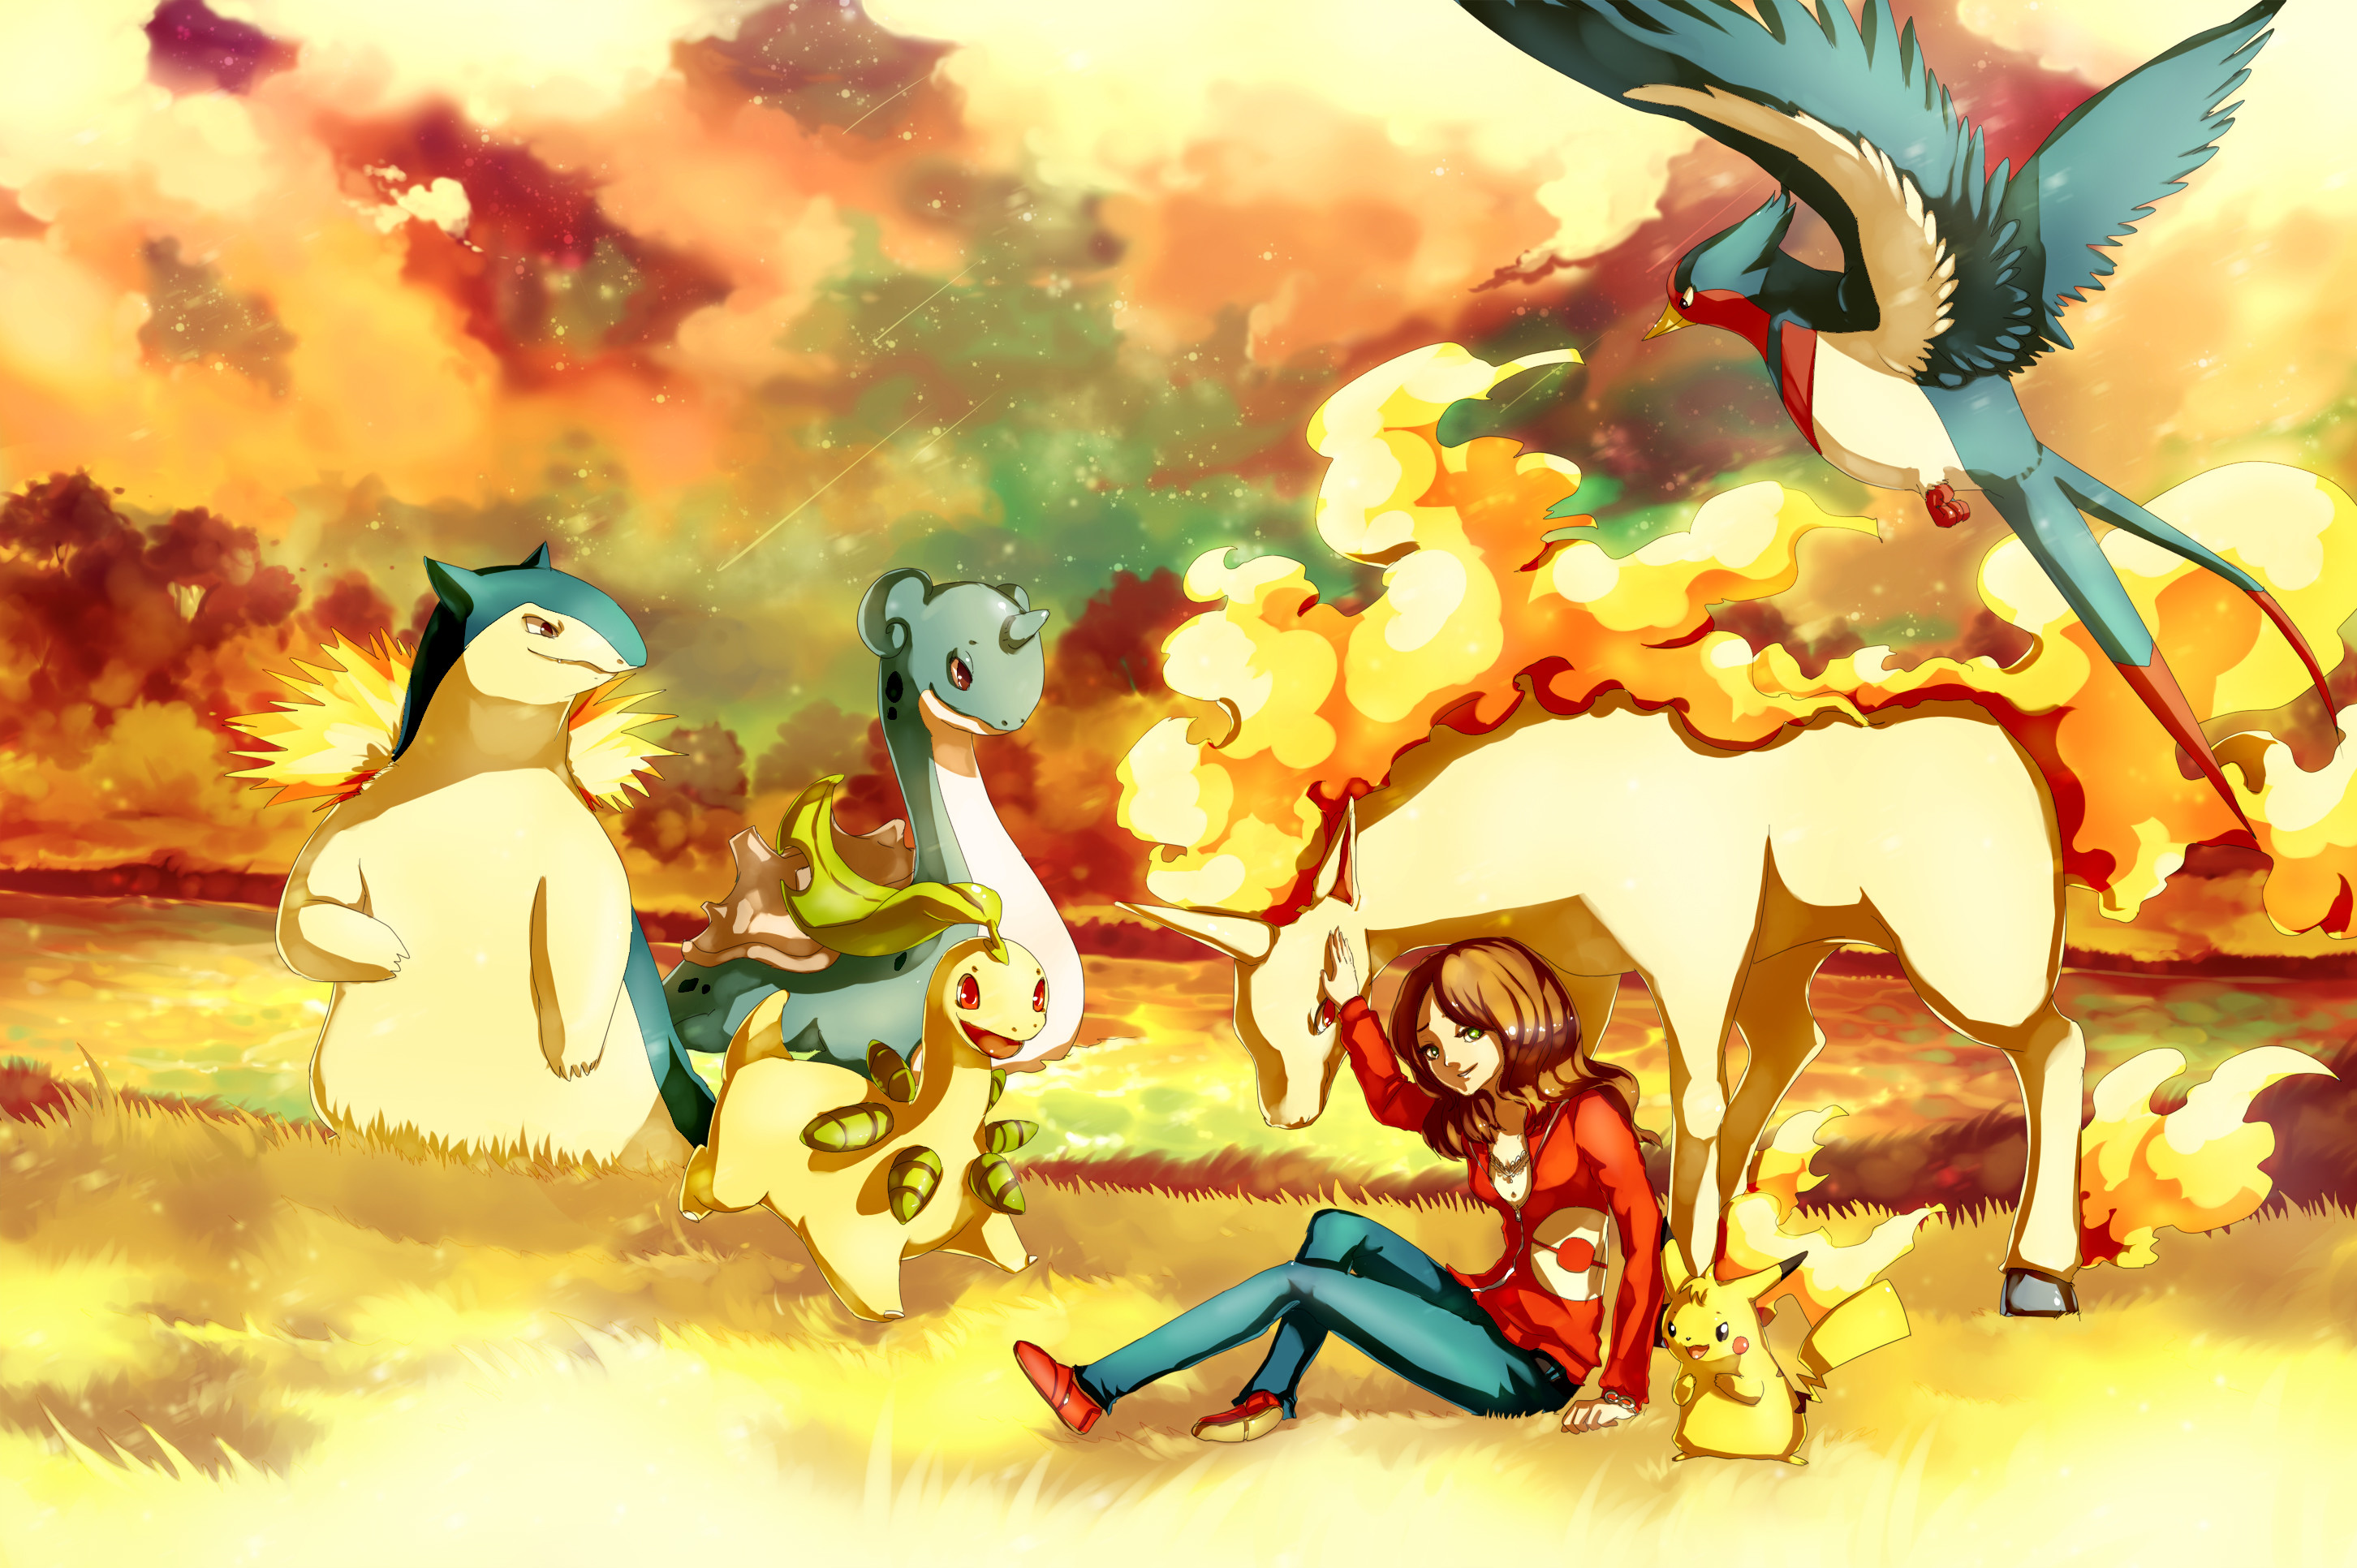 Res: 2904x1932, Pokemon universe Full HD Wallpaper and Background Image       ID:615000